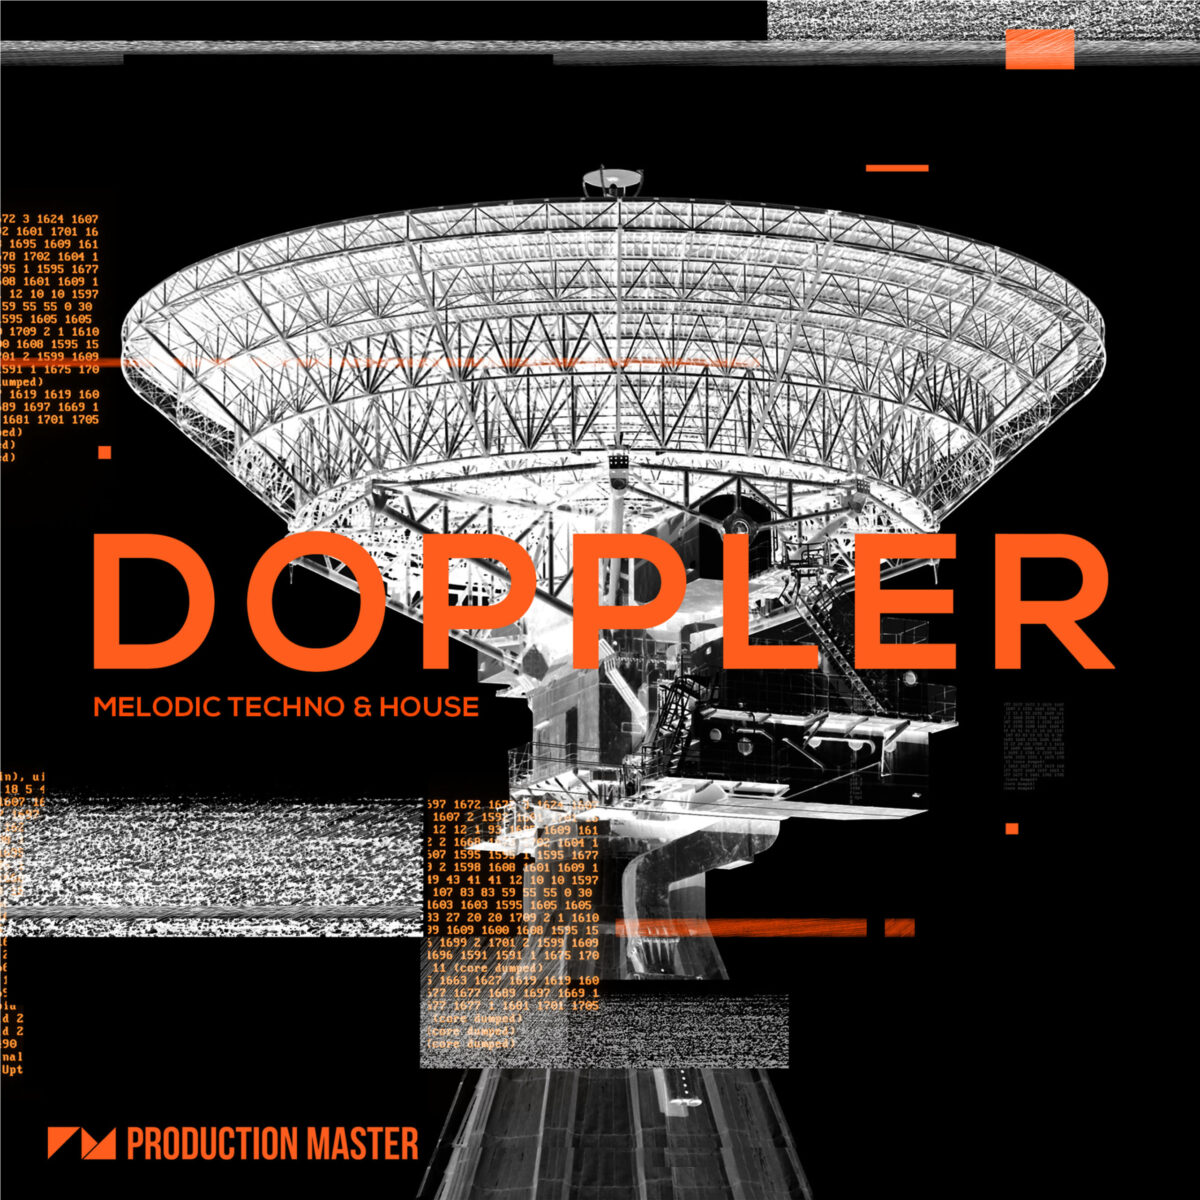 Production Master | Doppler - Melodic Techno & House